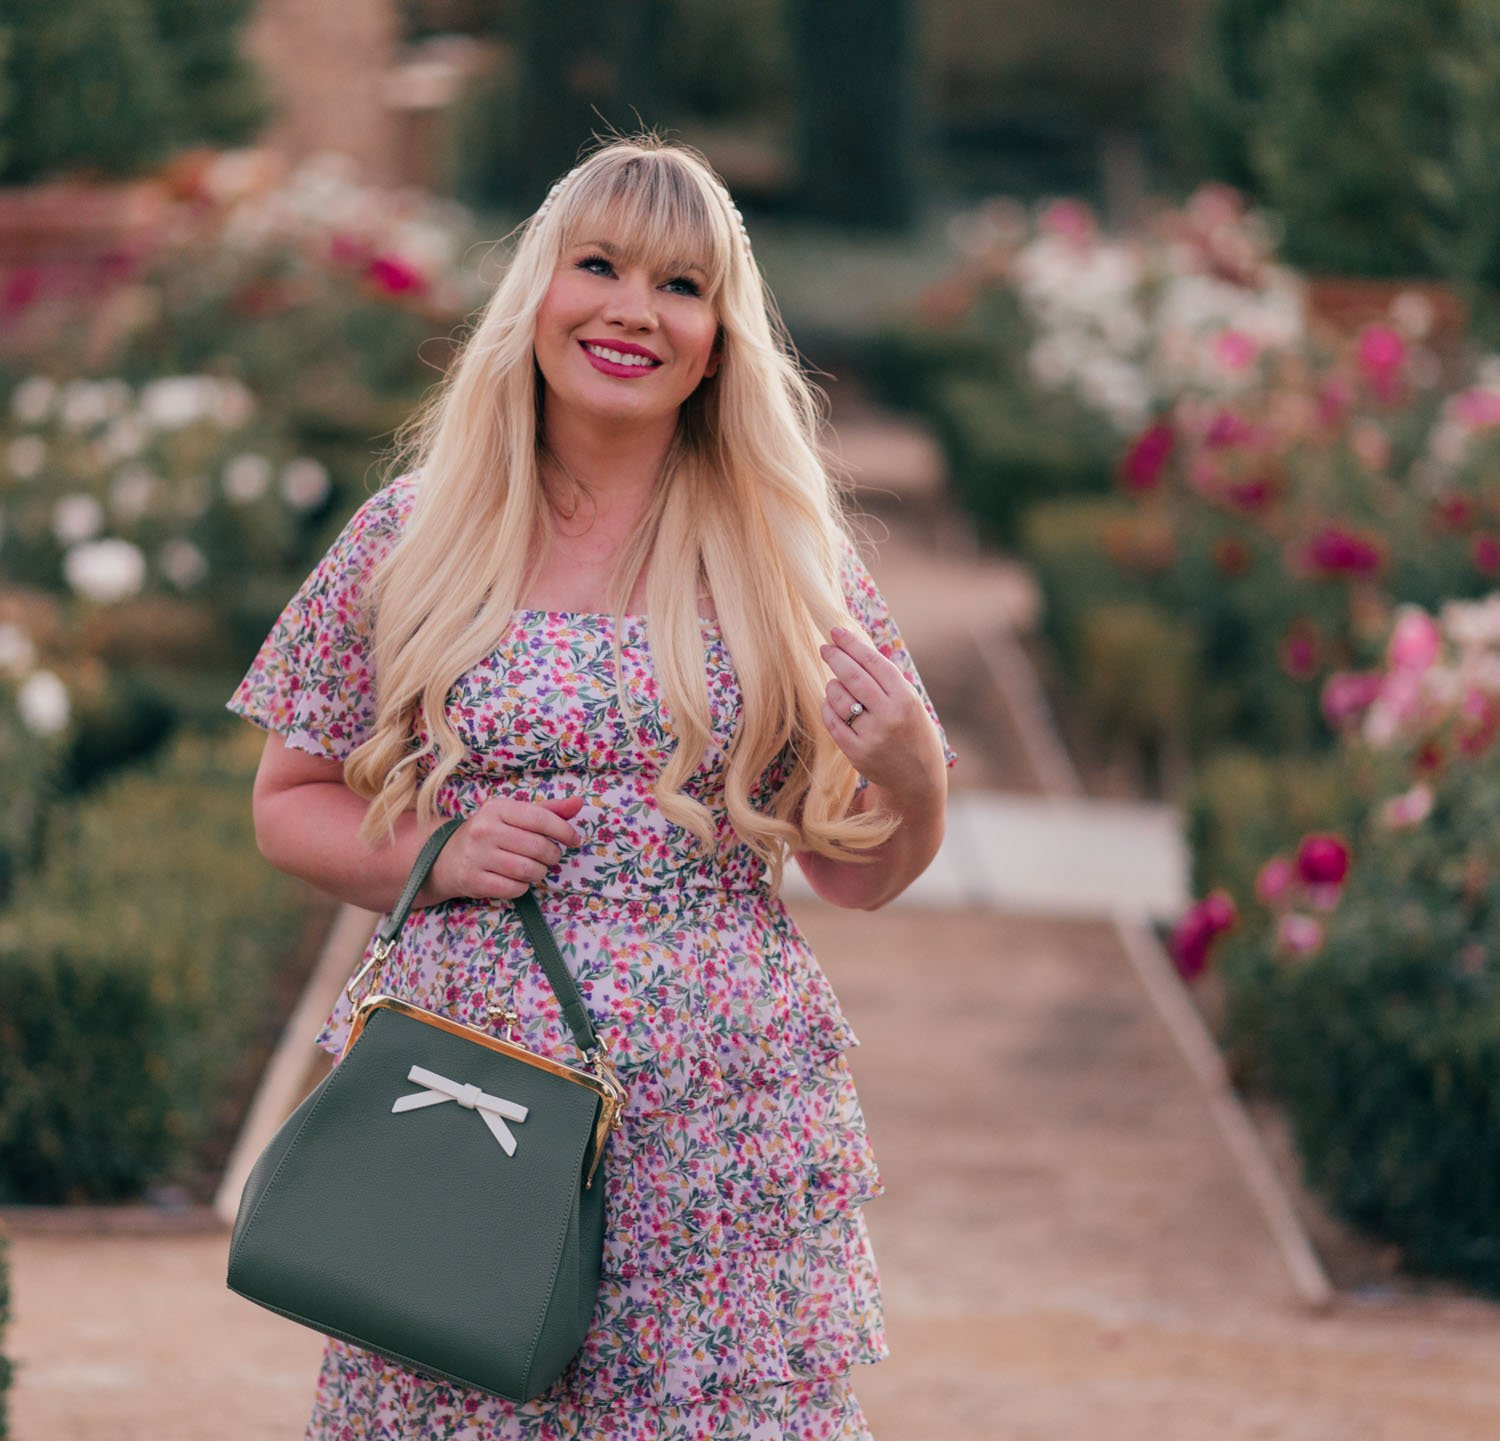 Elizabeth Hugen of Lizzie in Lace transitions into fall with a Girly colorful floral dress.